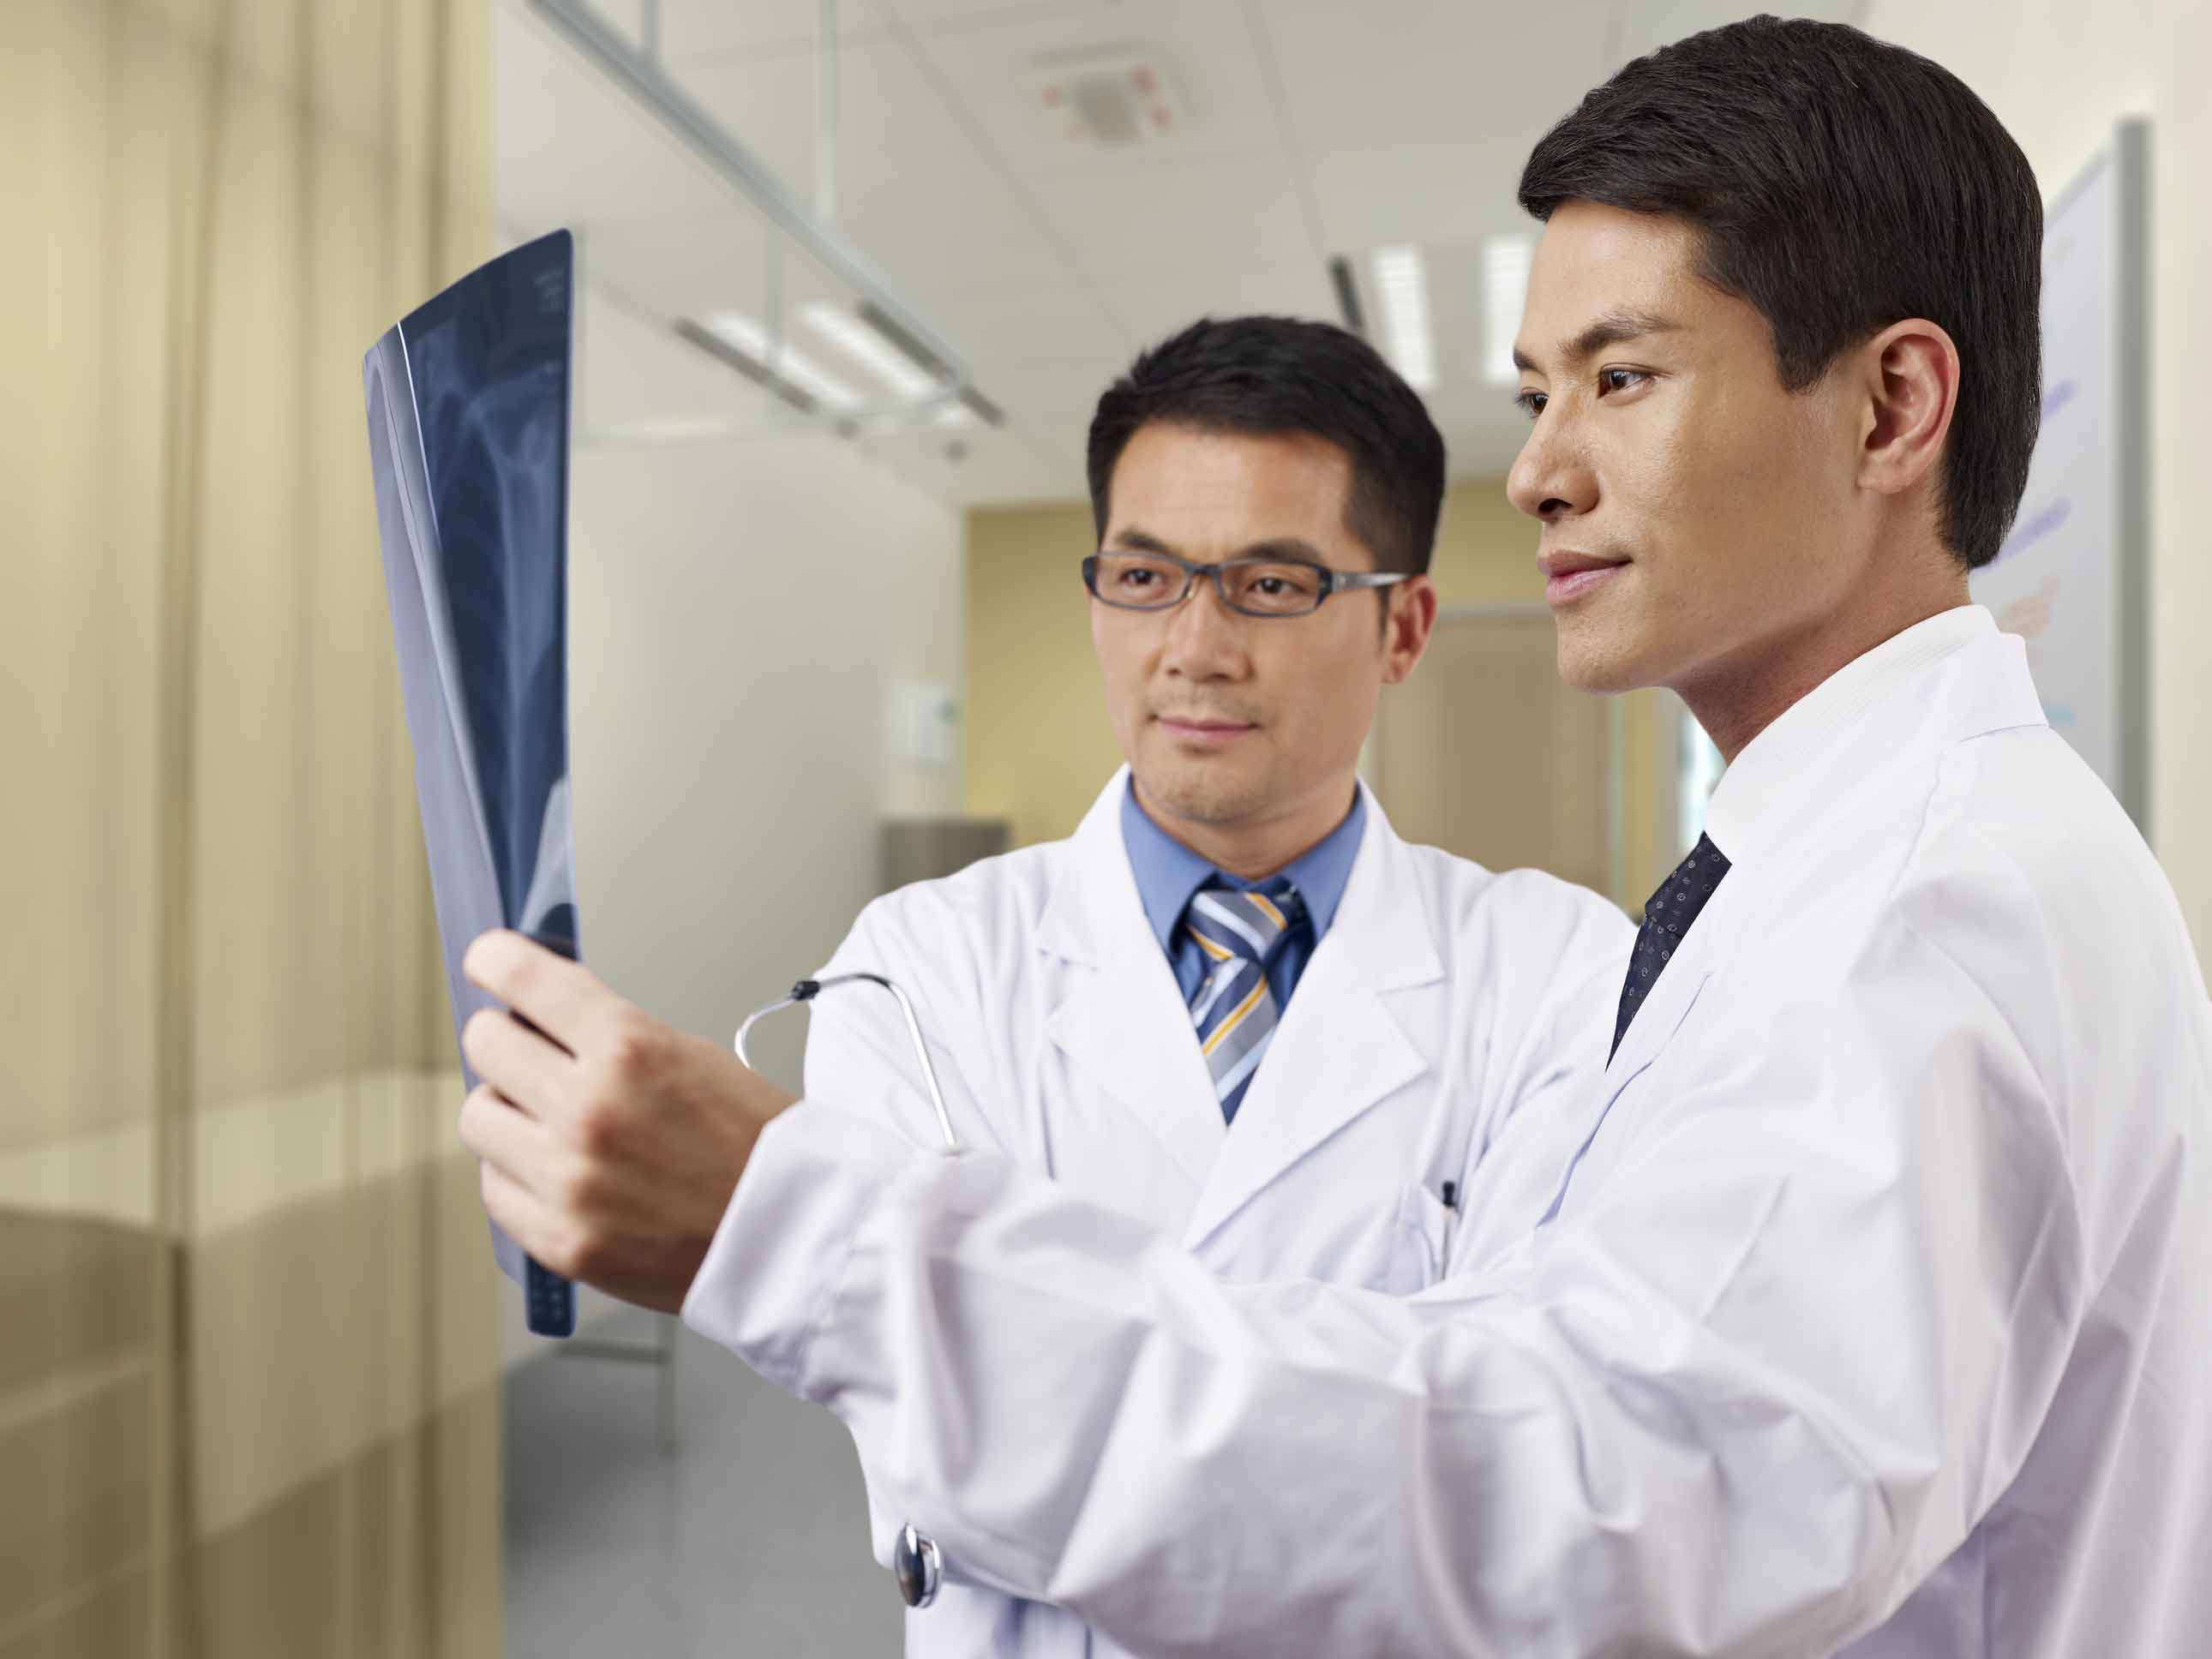 two asian doctors looking at x-ray film in consultation room.